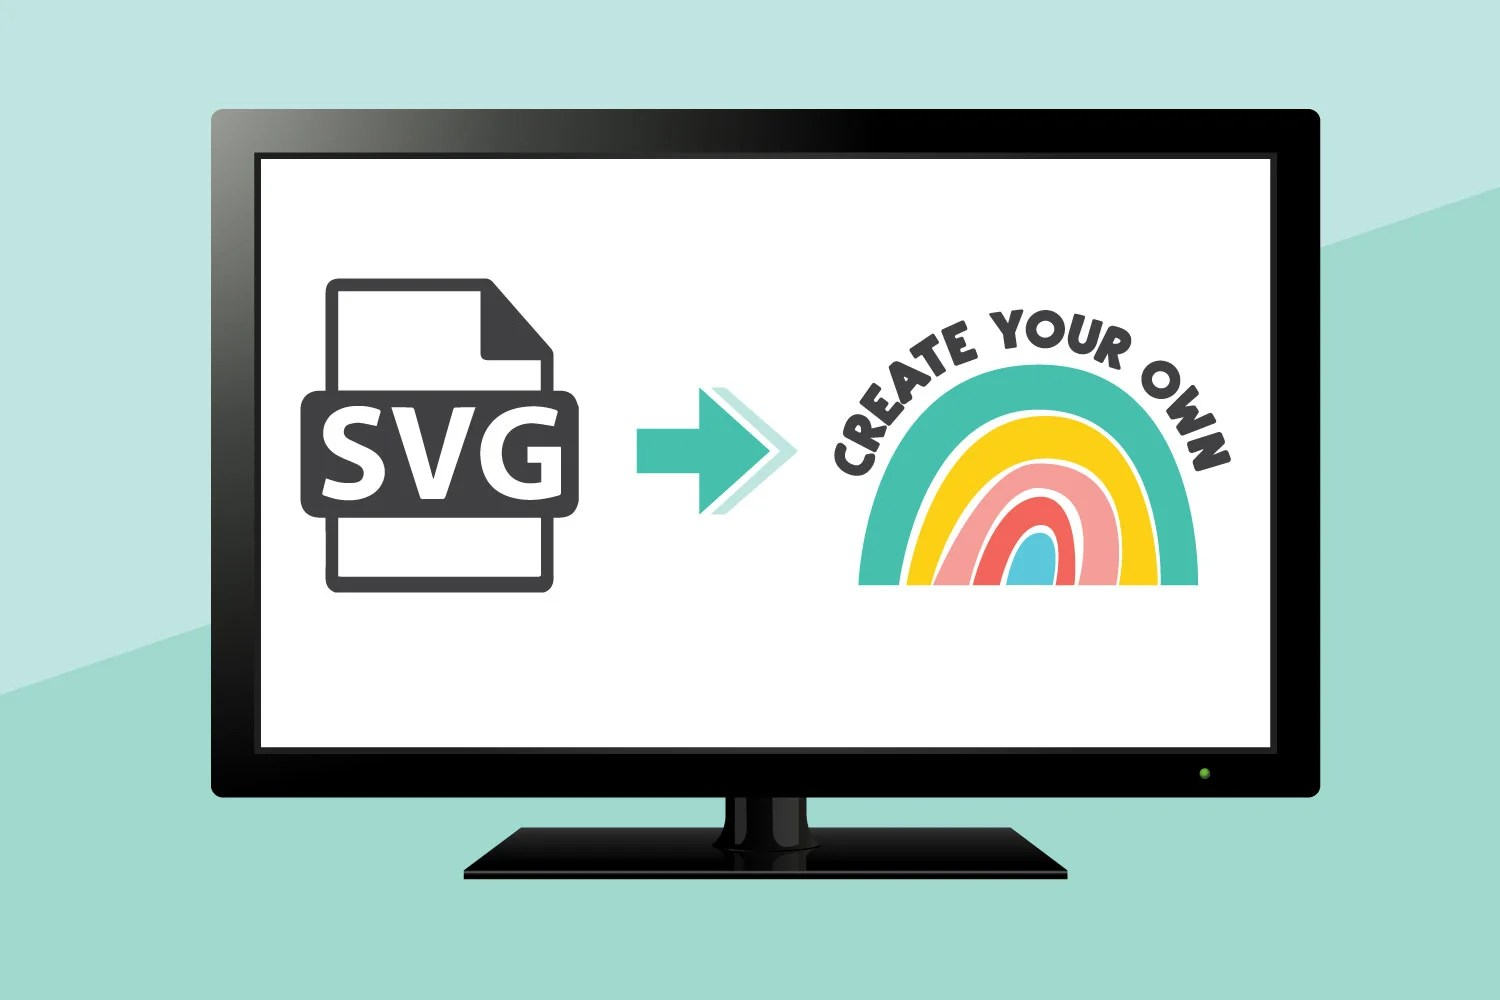 Mockup of computer with SVG icon and SVG thumbnail